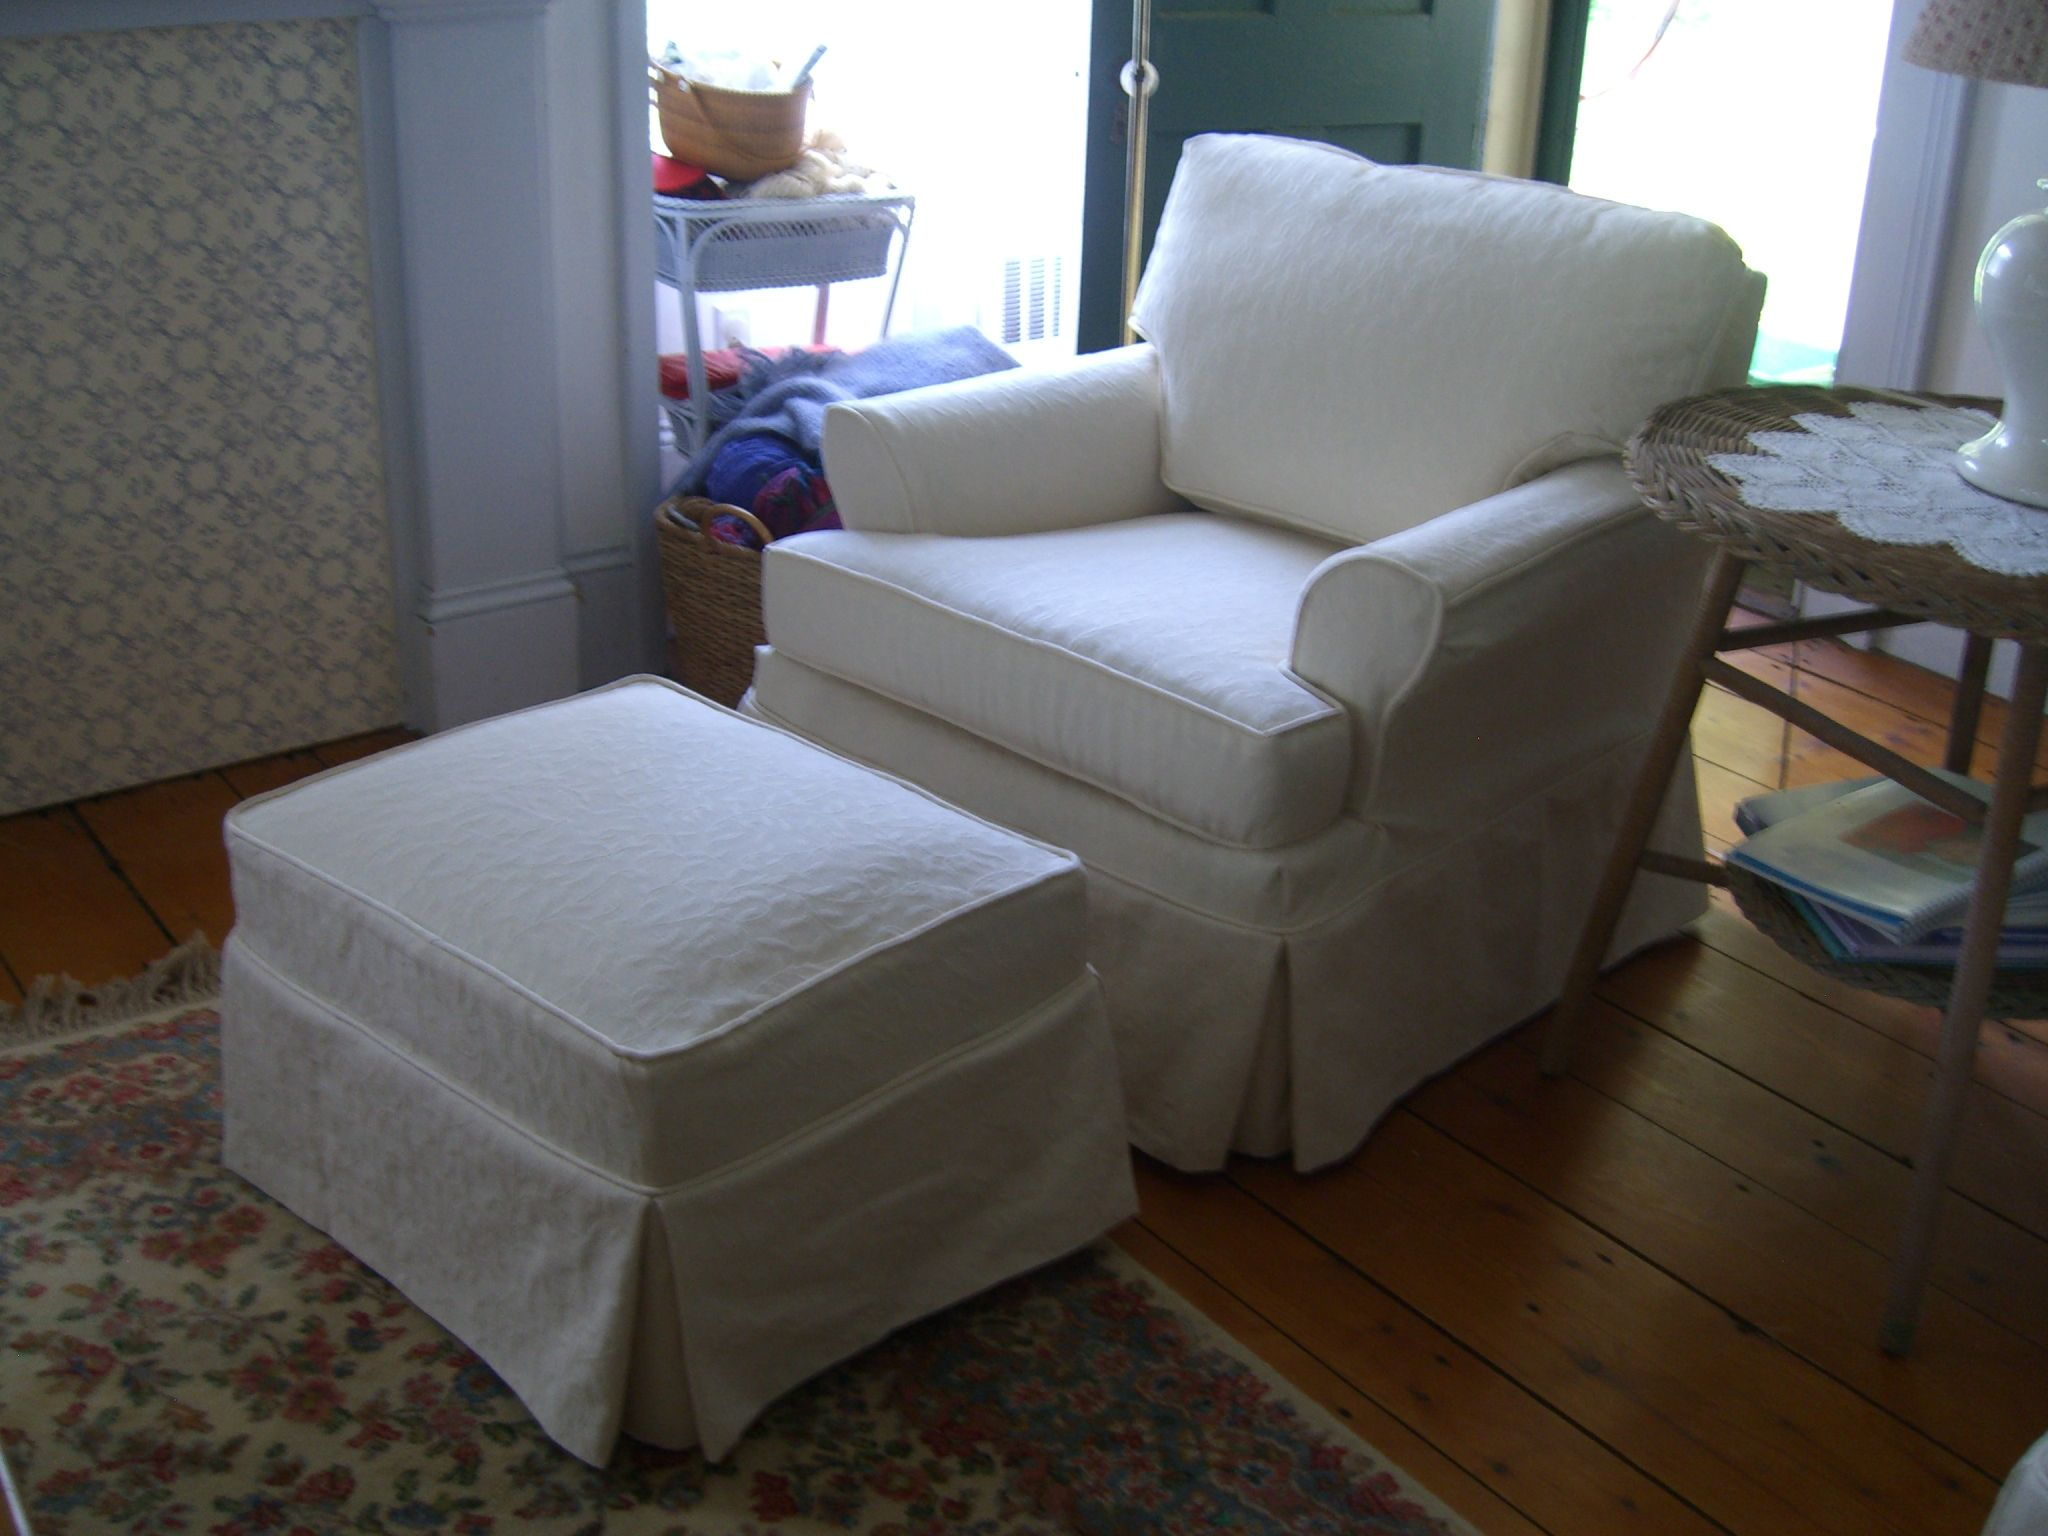 Club chair and ottoman in crisp white fabric slipcovers